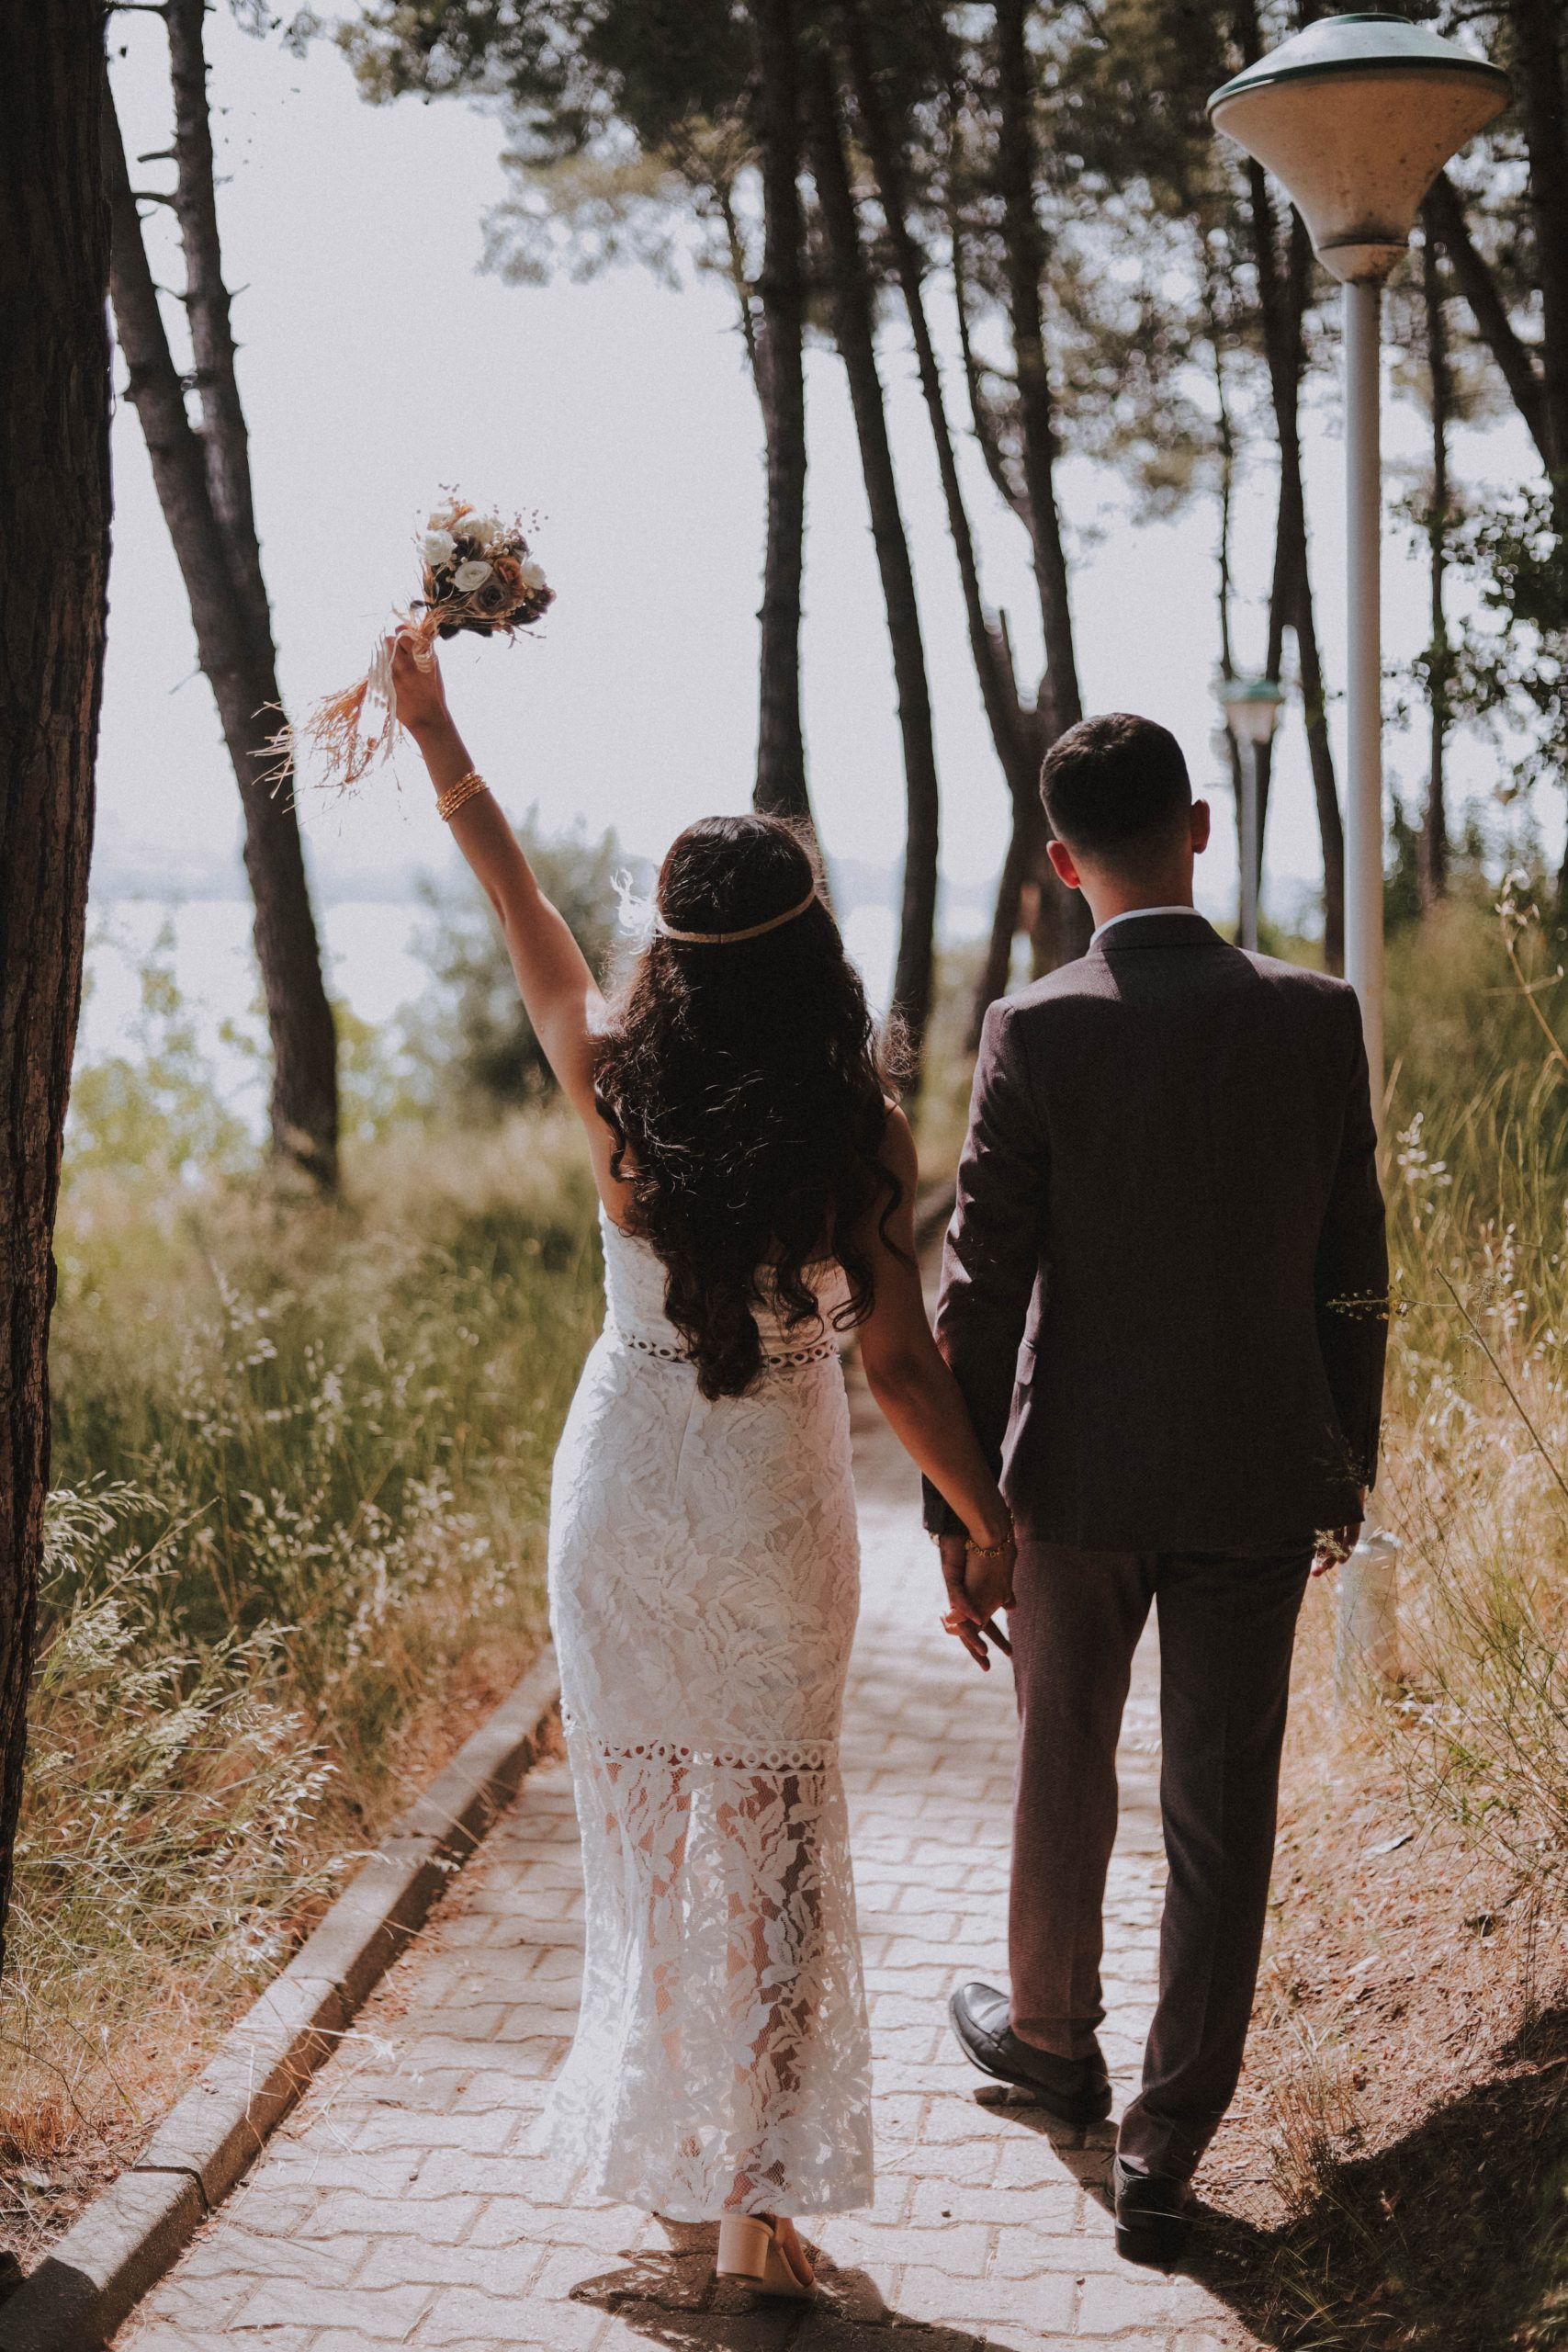 Wife and husband walking hand-in-hand down a path.. Wife holding bouquet in the air